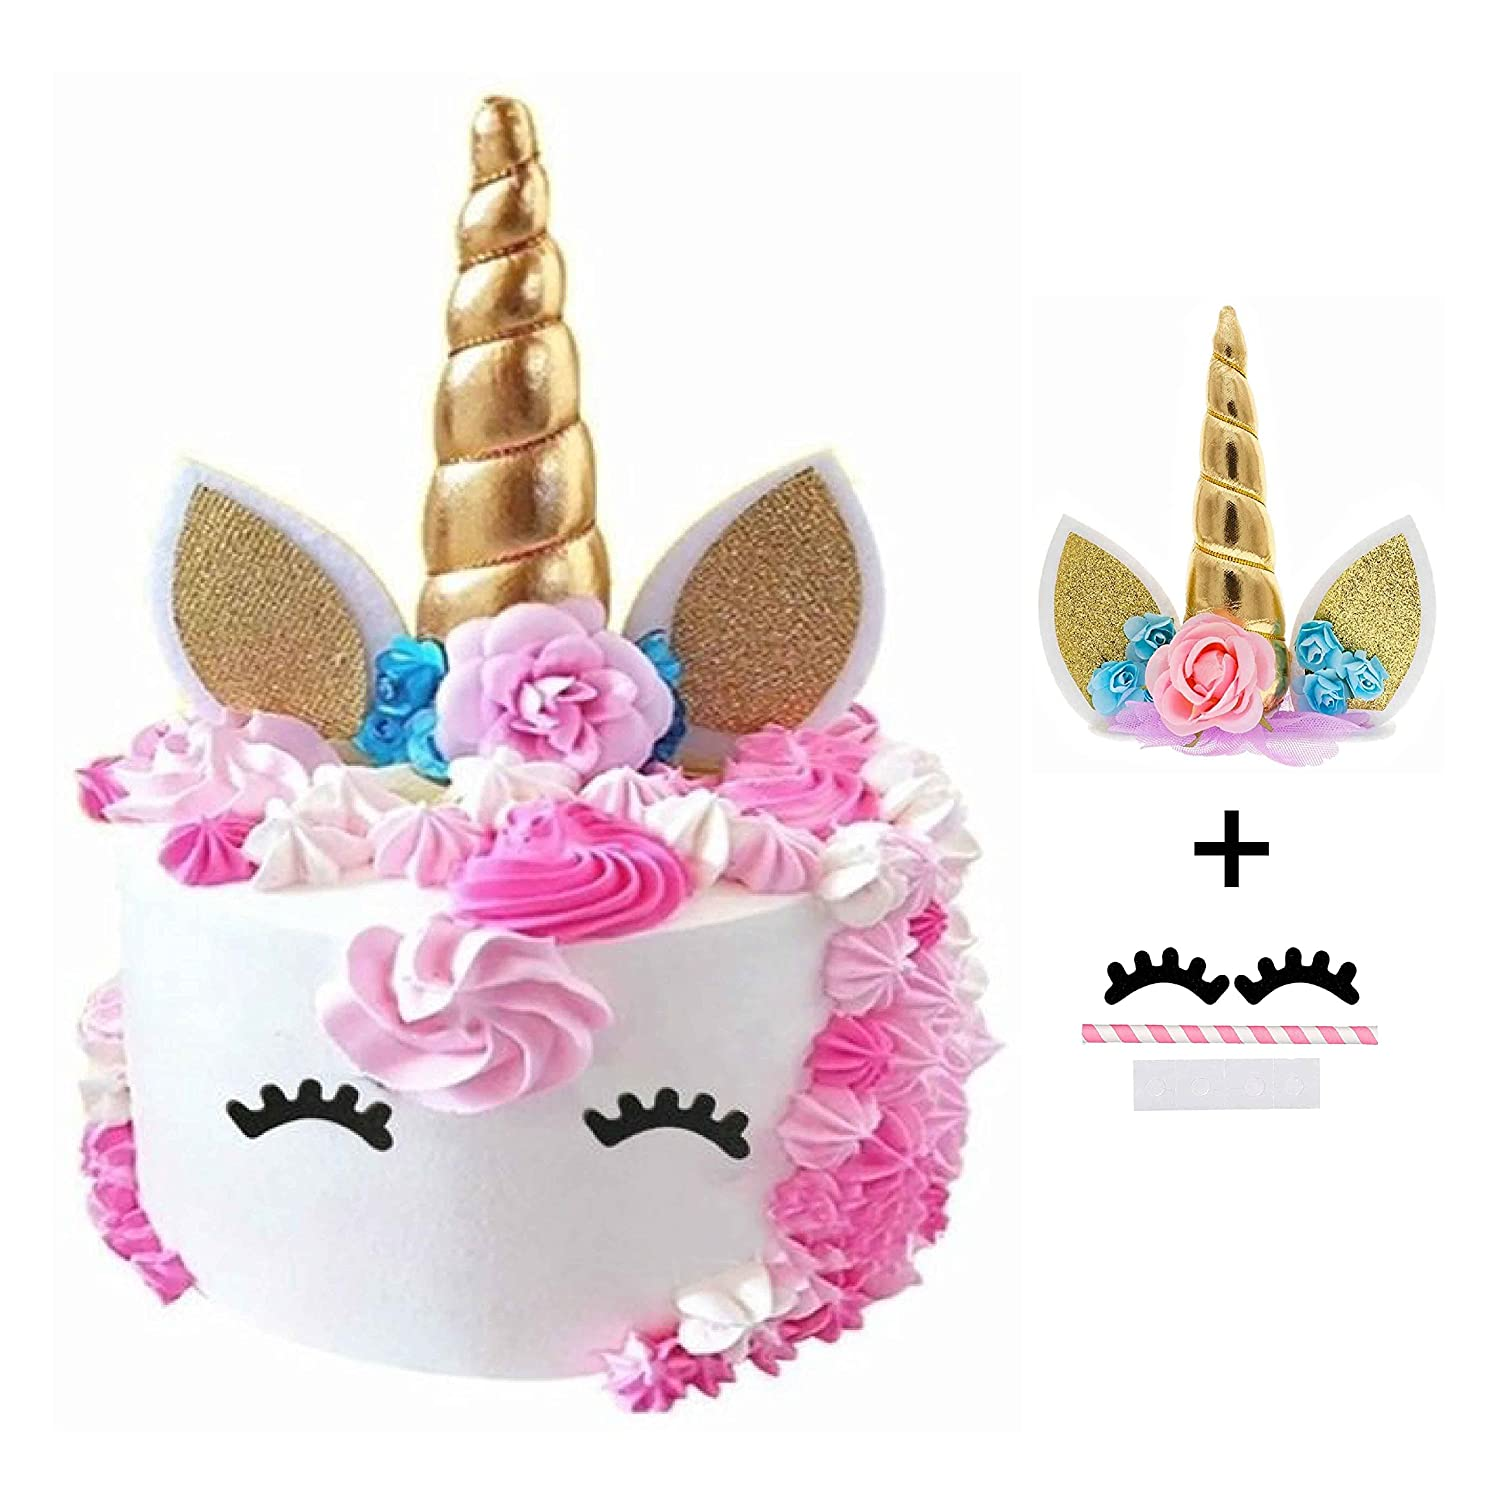 Unicorn Cake Topper with Gold Unicorn Horn, Glittery Ears, Flowers & Eyelashes | Perfect Unicorn Cake Decoration for Birthday Party, Baby Shower, Wedding Etc. | Unicorn Party Supplies by 7 Colors Kids